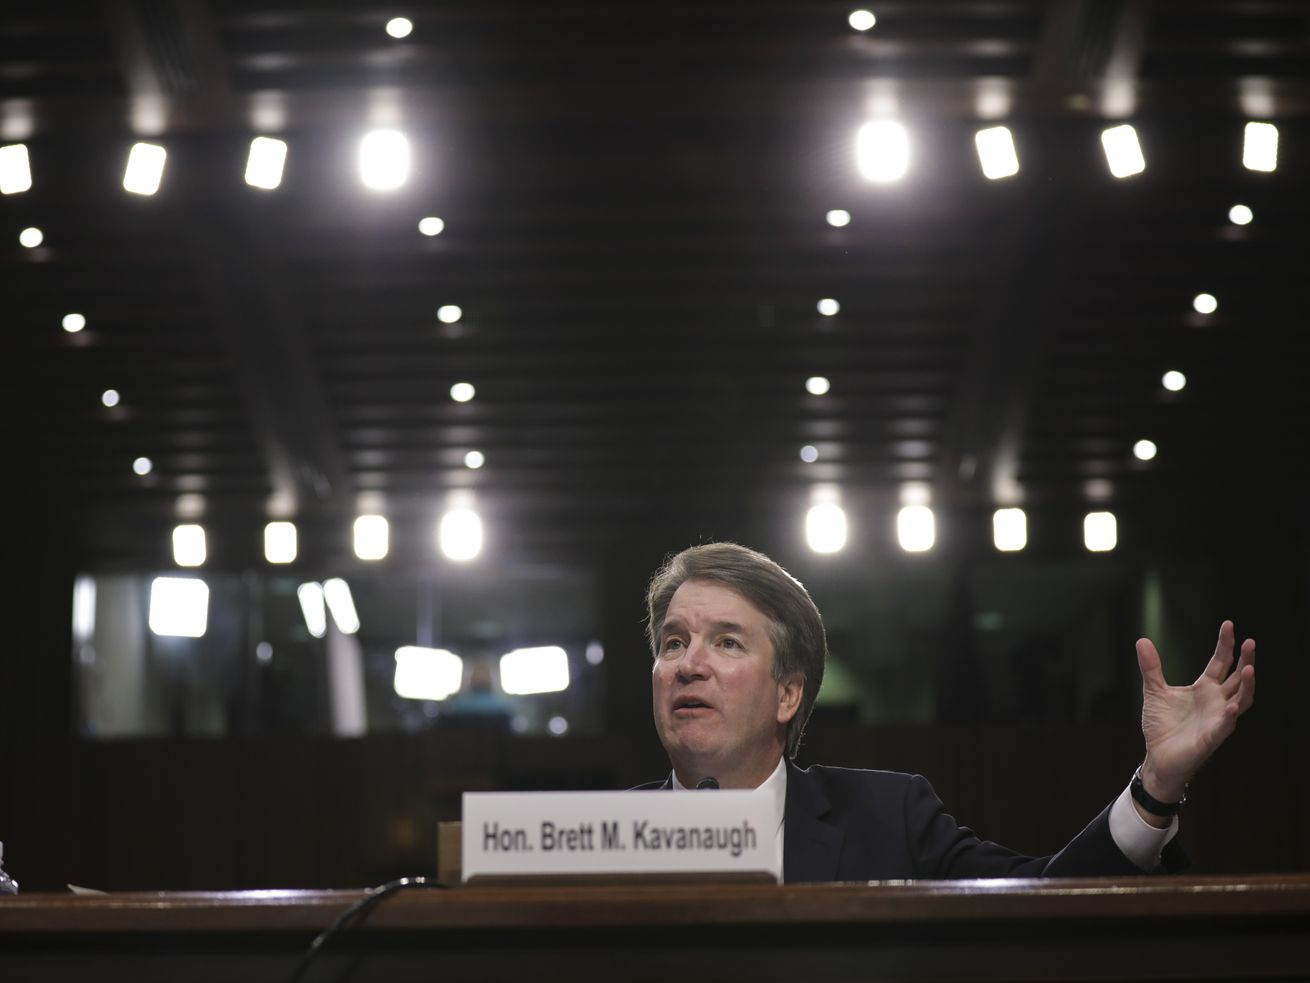 Supreme Court nominee Brett Kavanaugh testifying before the Senate Judiciary Commitee in September 2018.